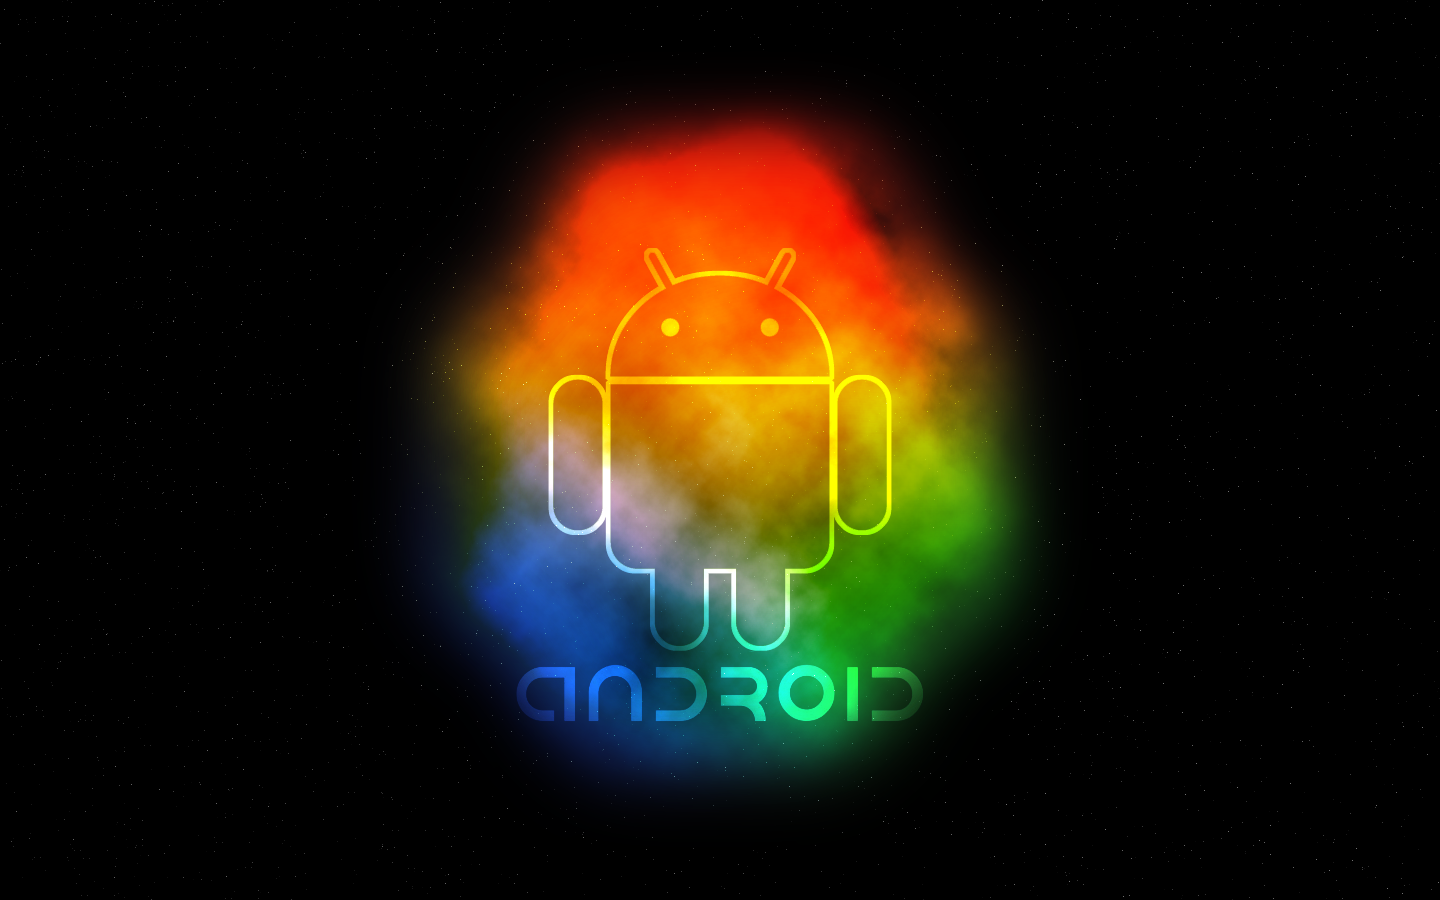 Wallpaper For Android Tab